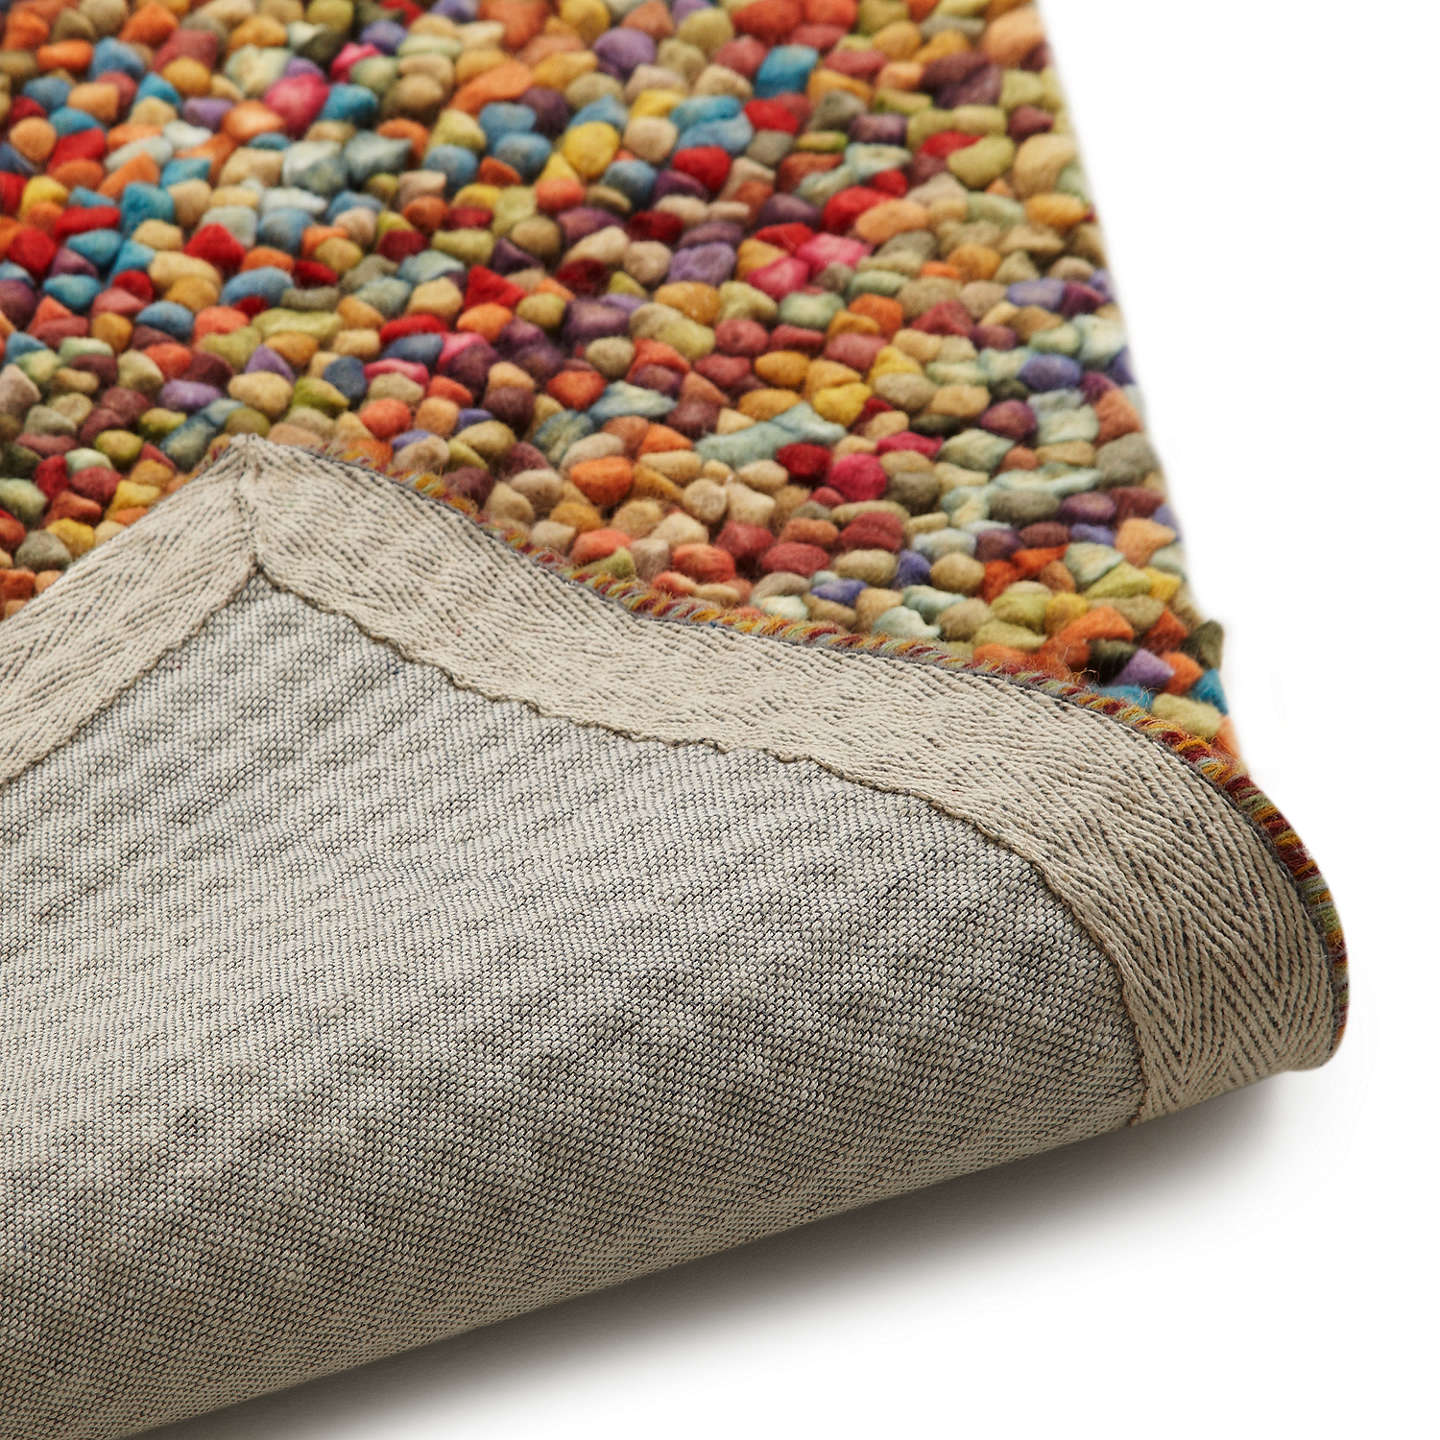 John Lewis Jelly Beans Rug Multicoloured L300xw200cm Online At Johnlewis Com